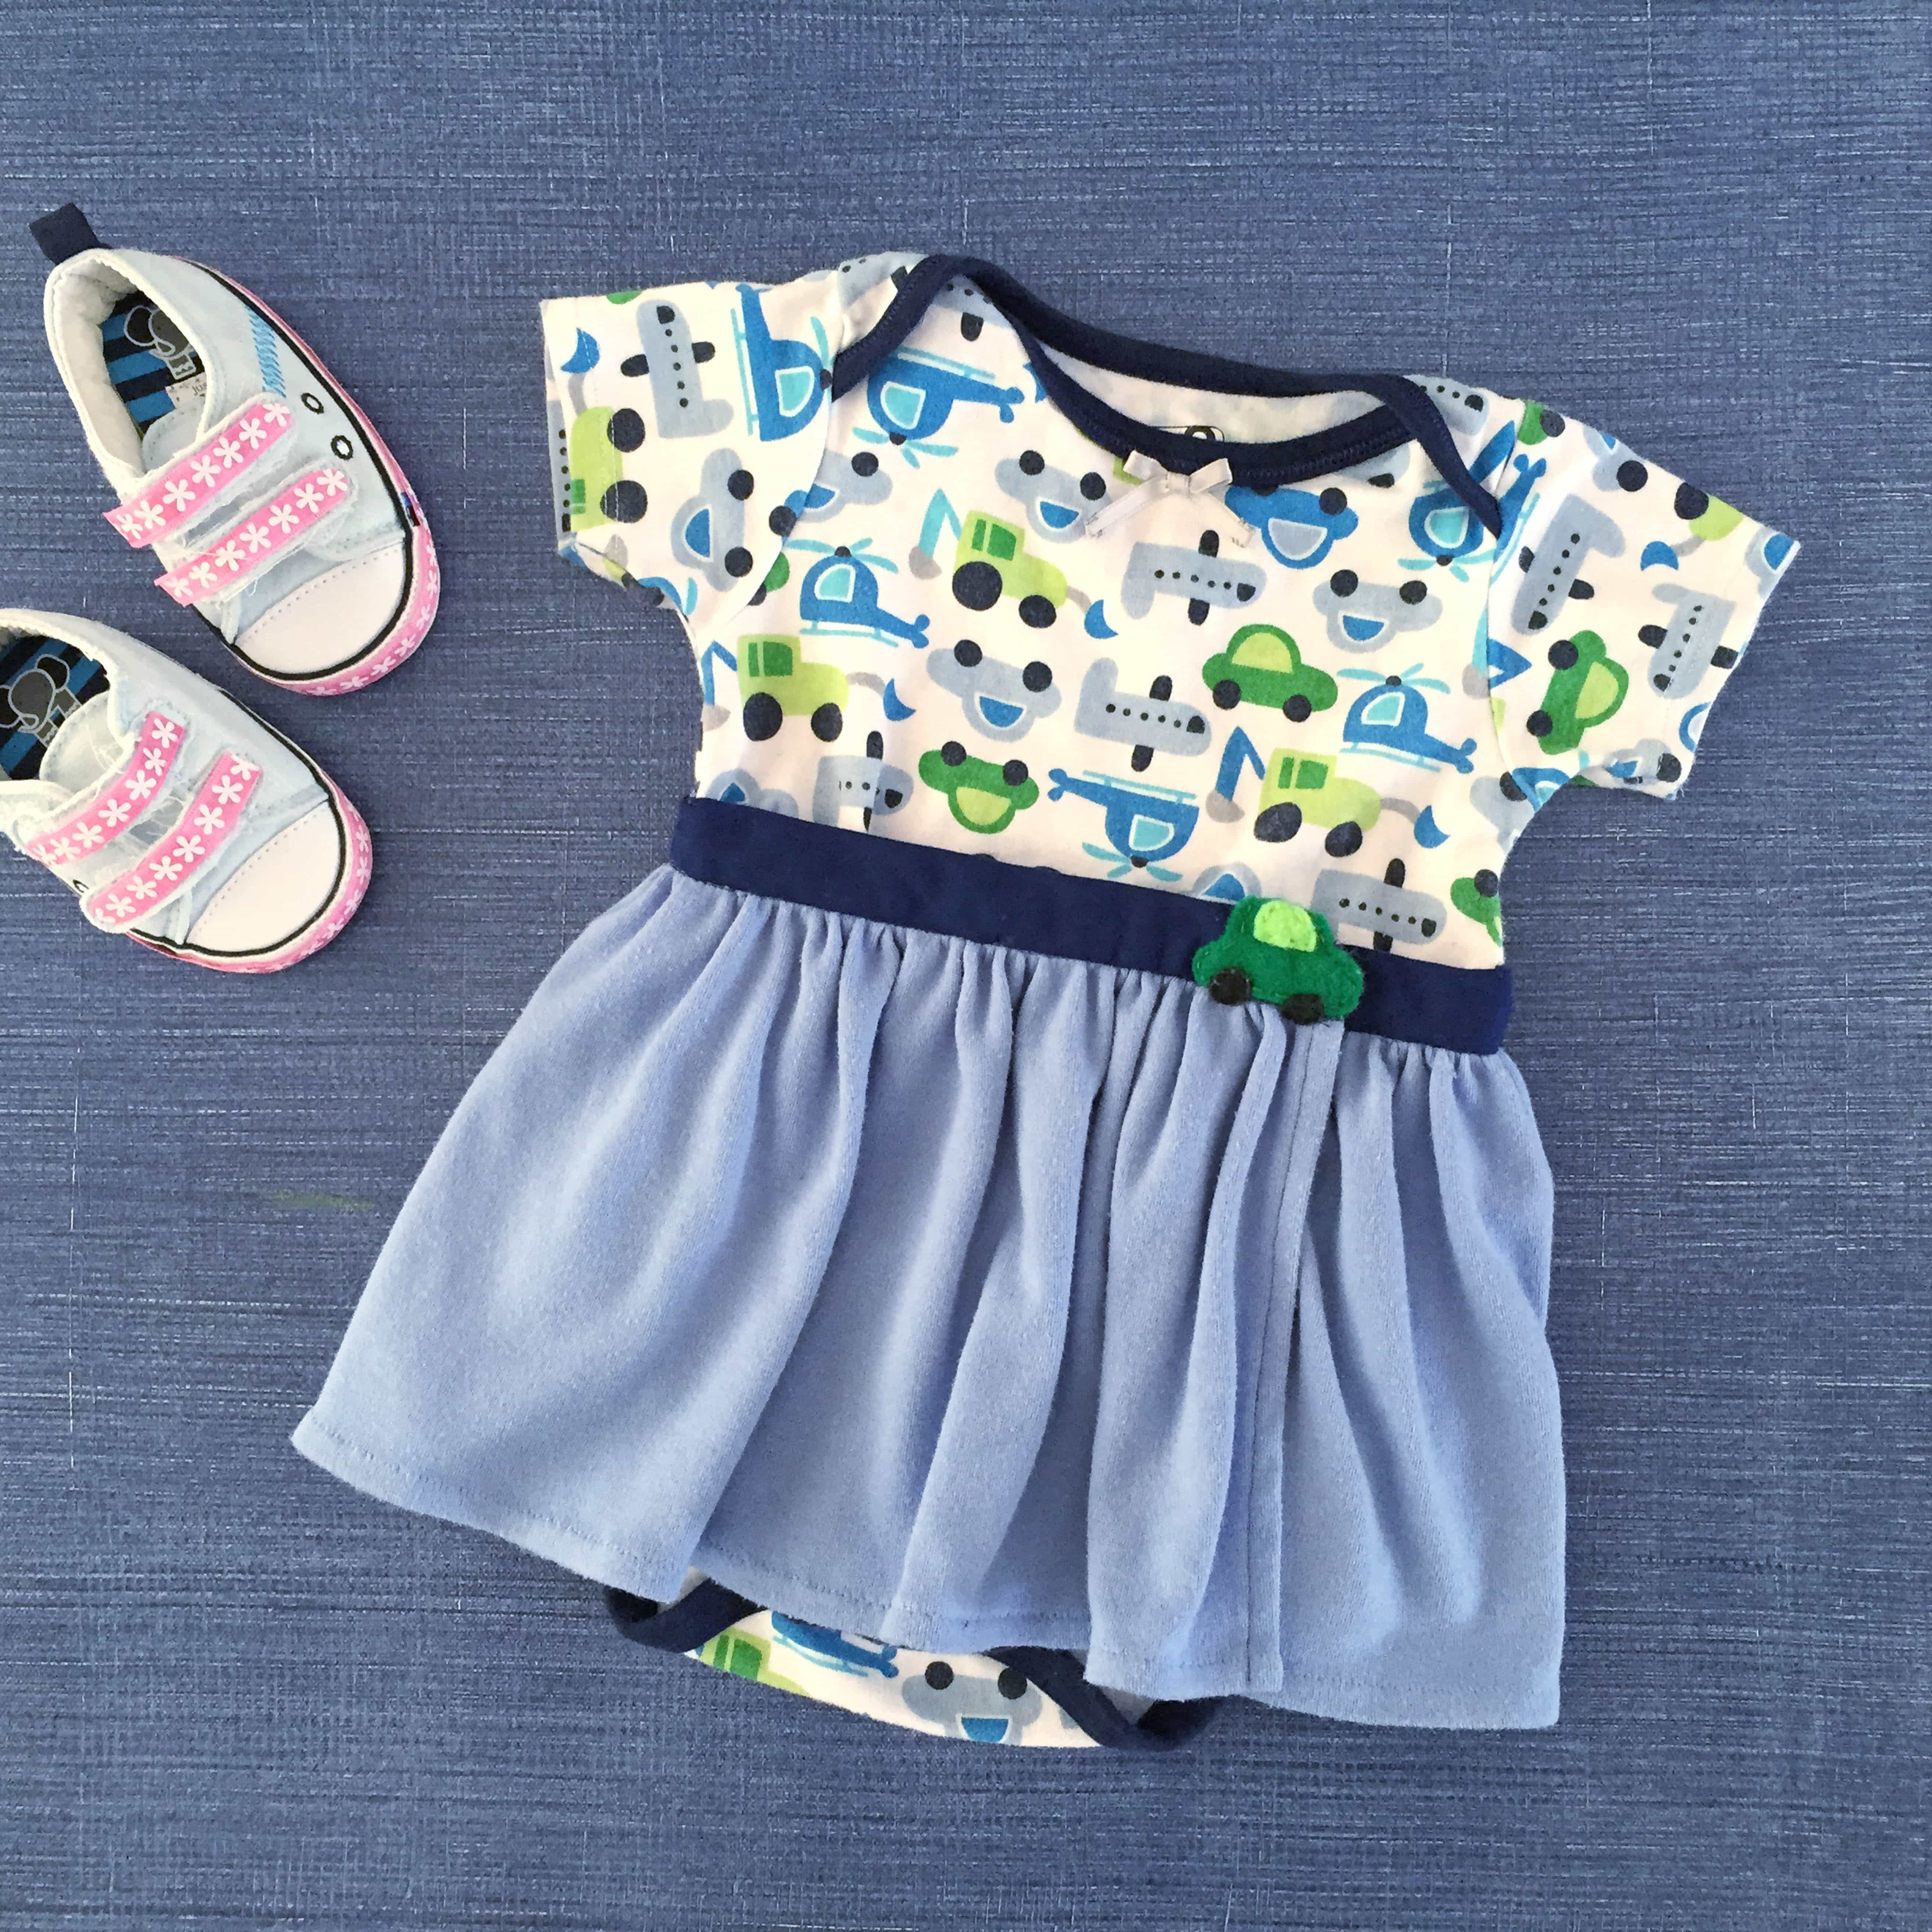 Baby onesie with cars and trucks on it with an attached blue skirt.